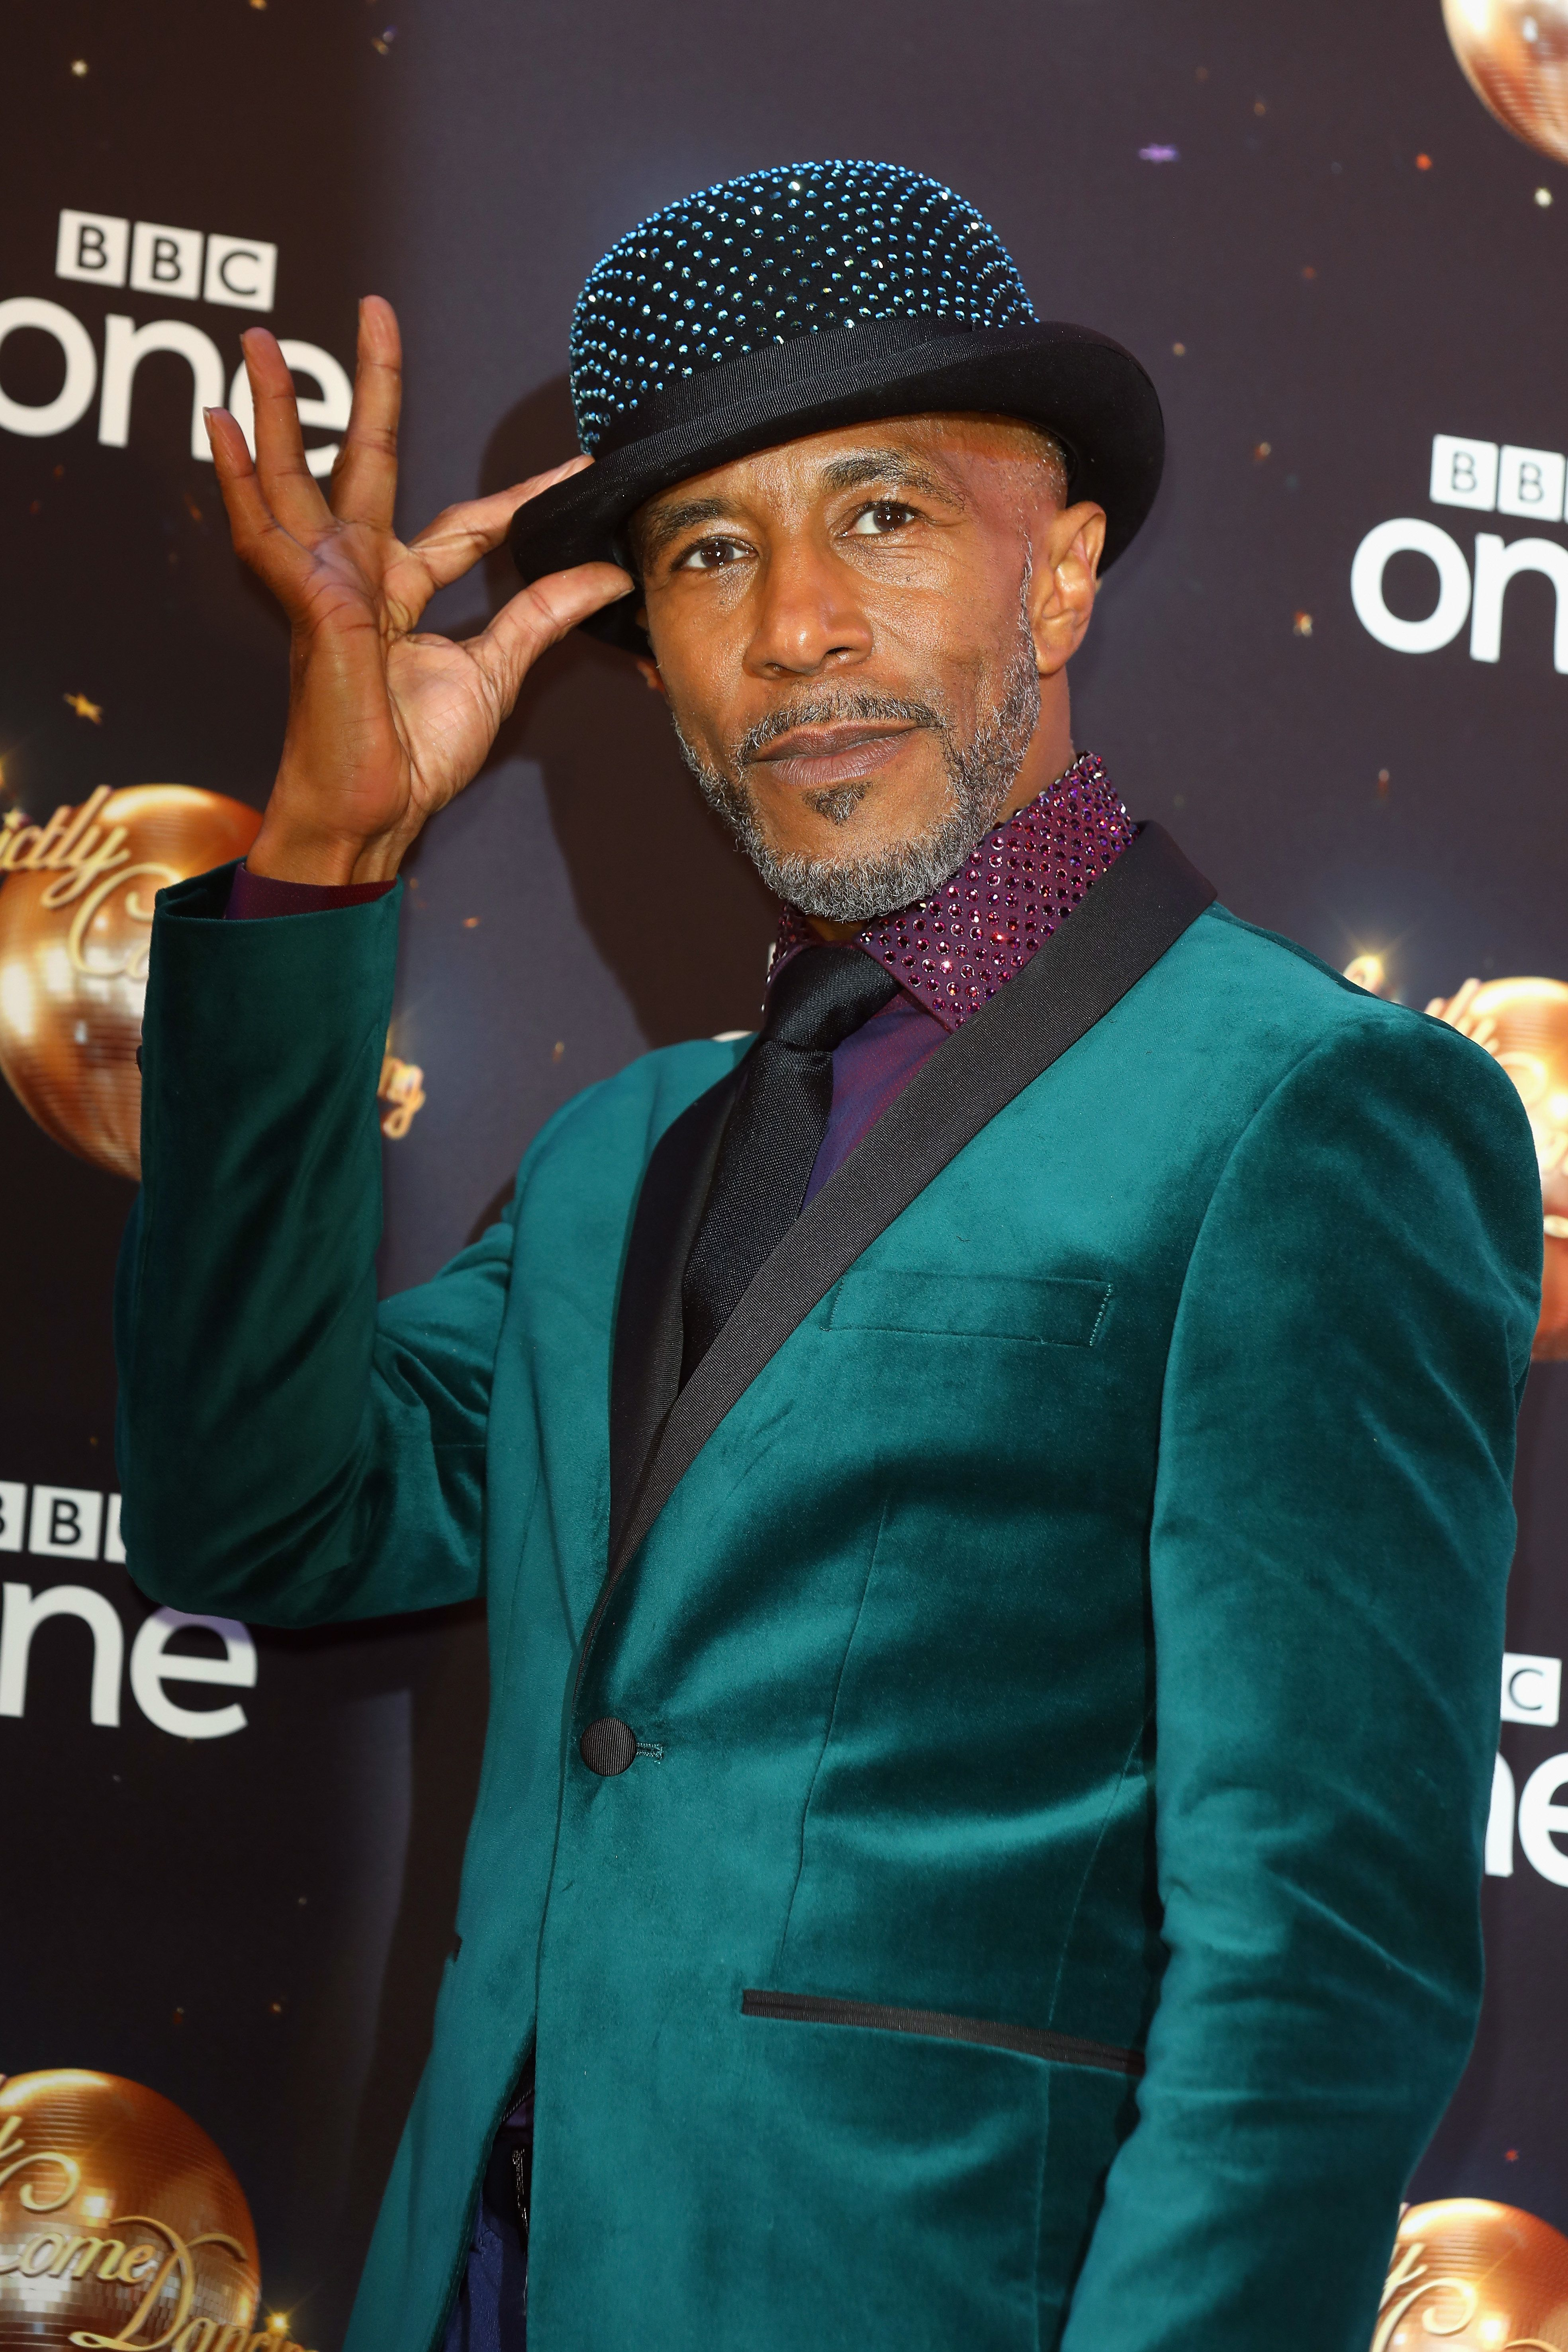 'Strictly Come Dancing' Star Danny John-Jules Suggests There Is A 'Vendetta' Against